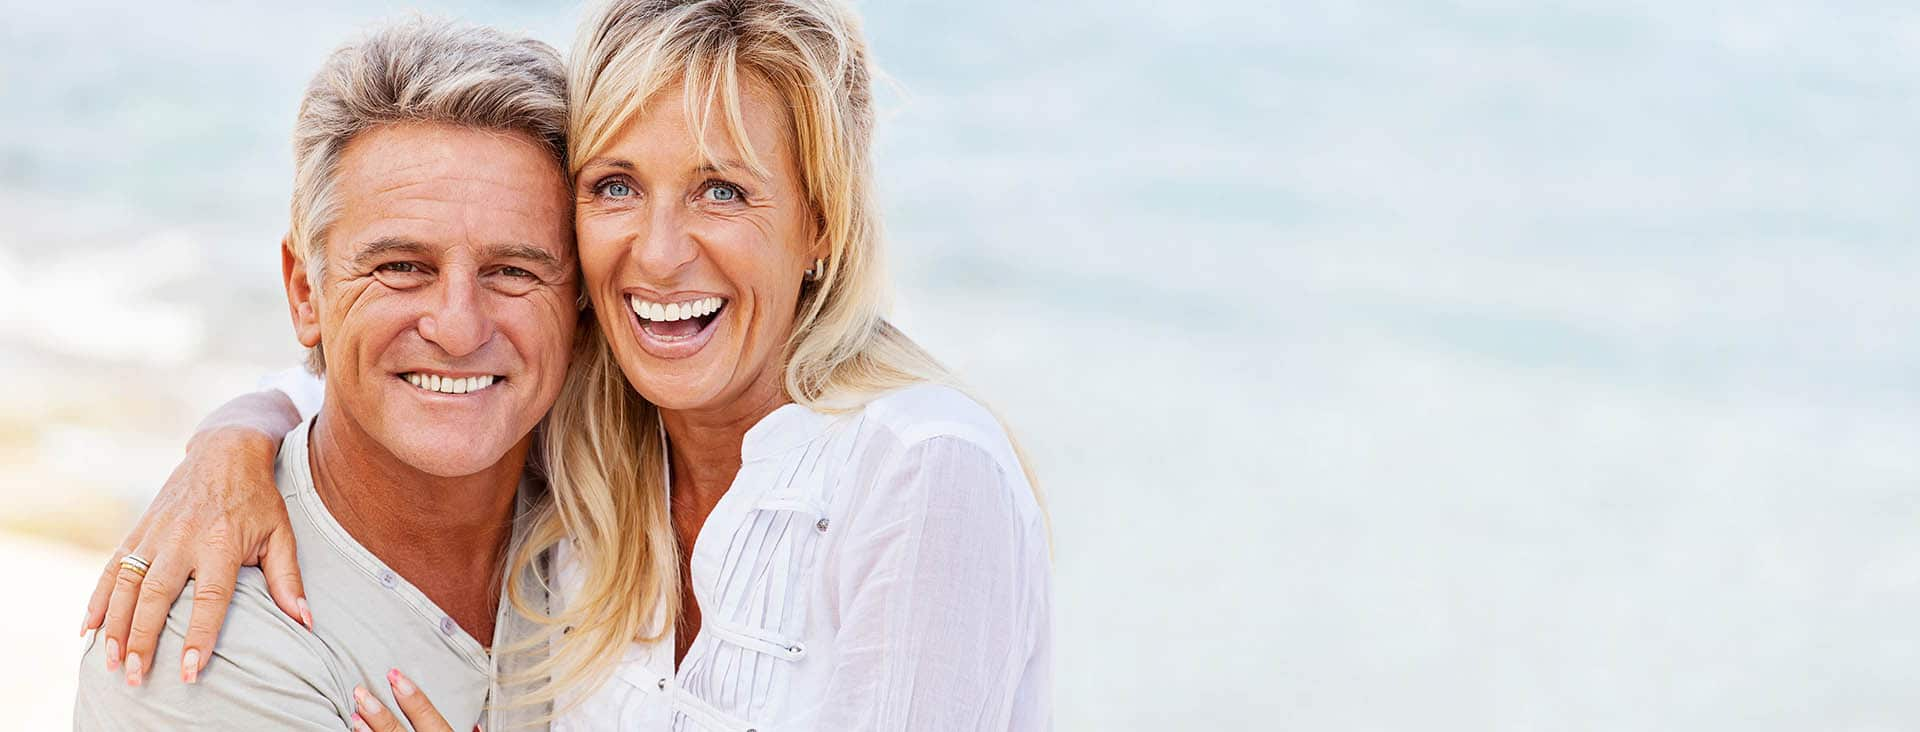 Dental Insurance for the Elderly (And Why it is Important to Have)